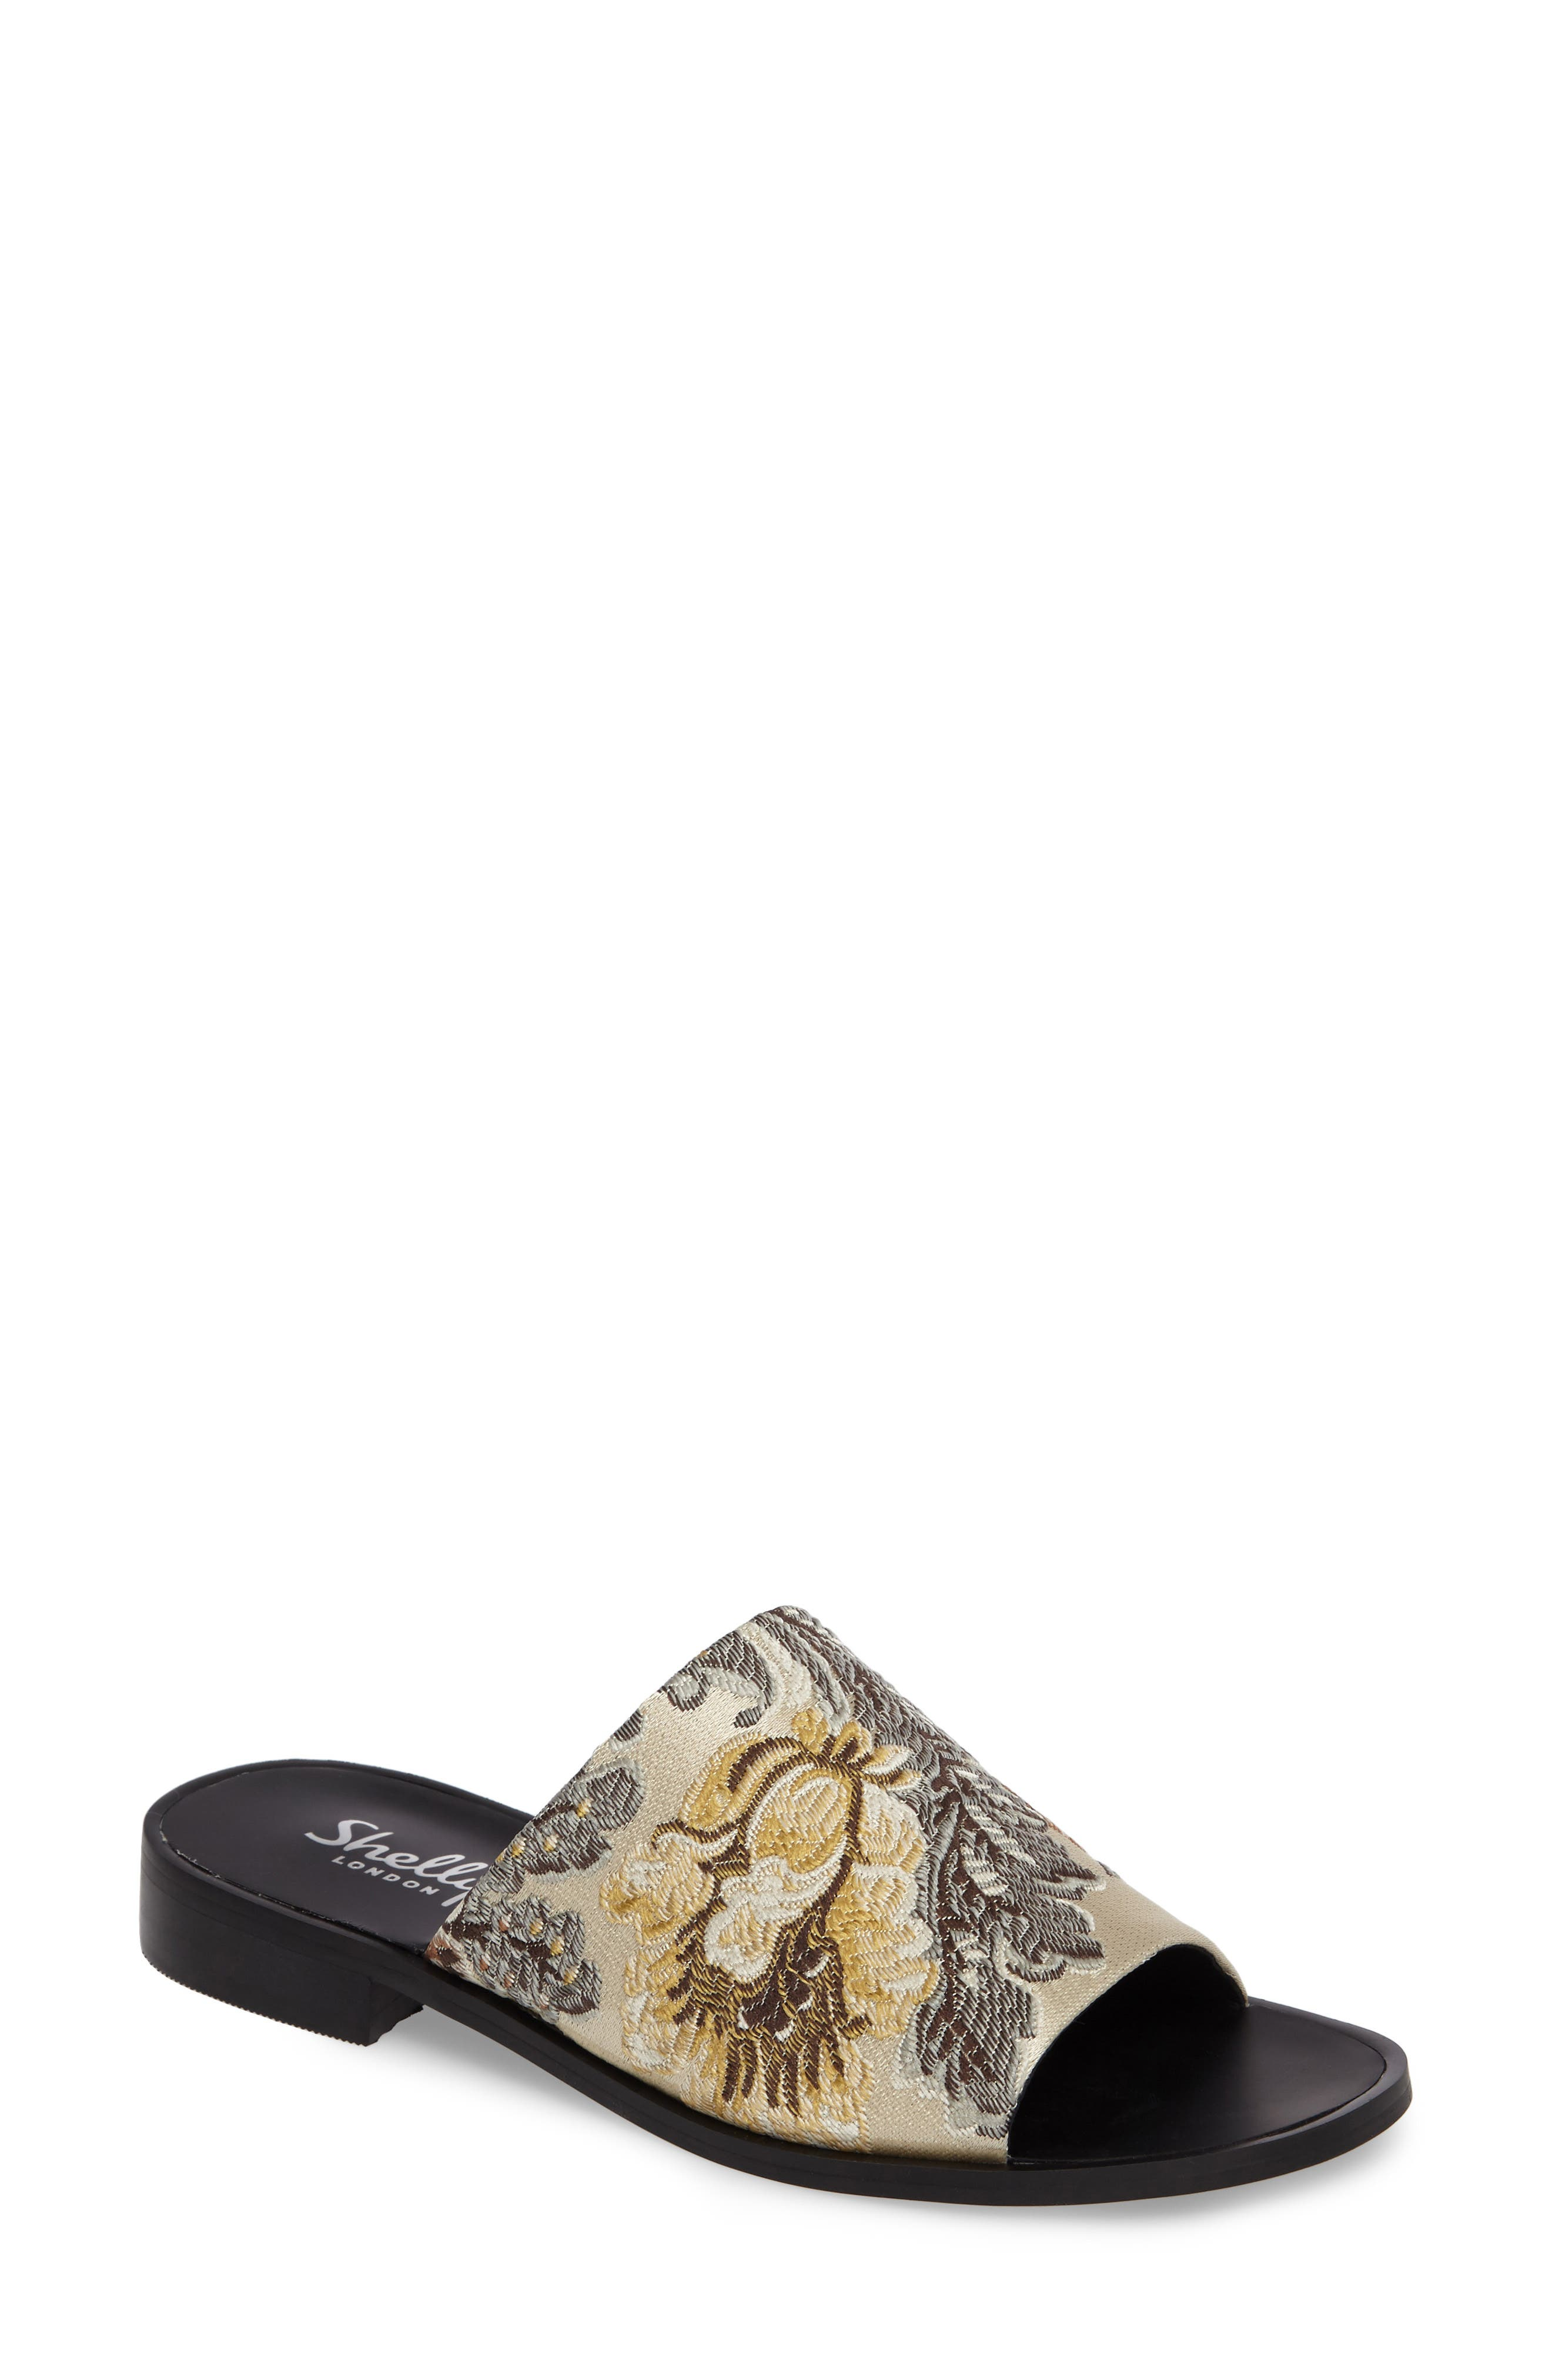 SHELLYS LONDON Enya Brocade Slide Sandal